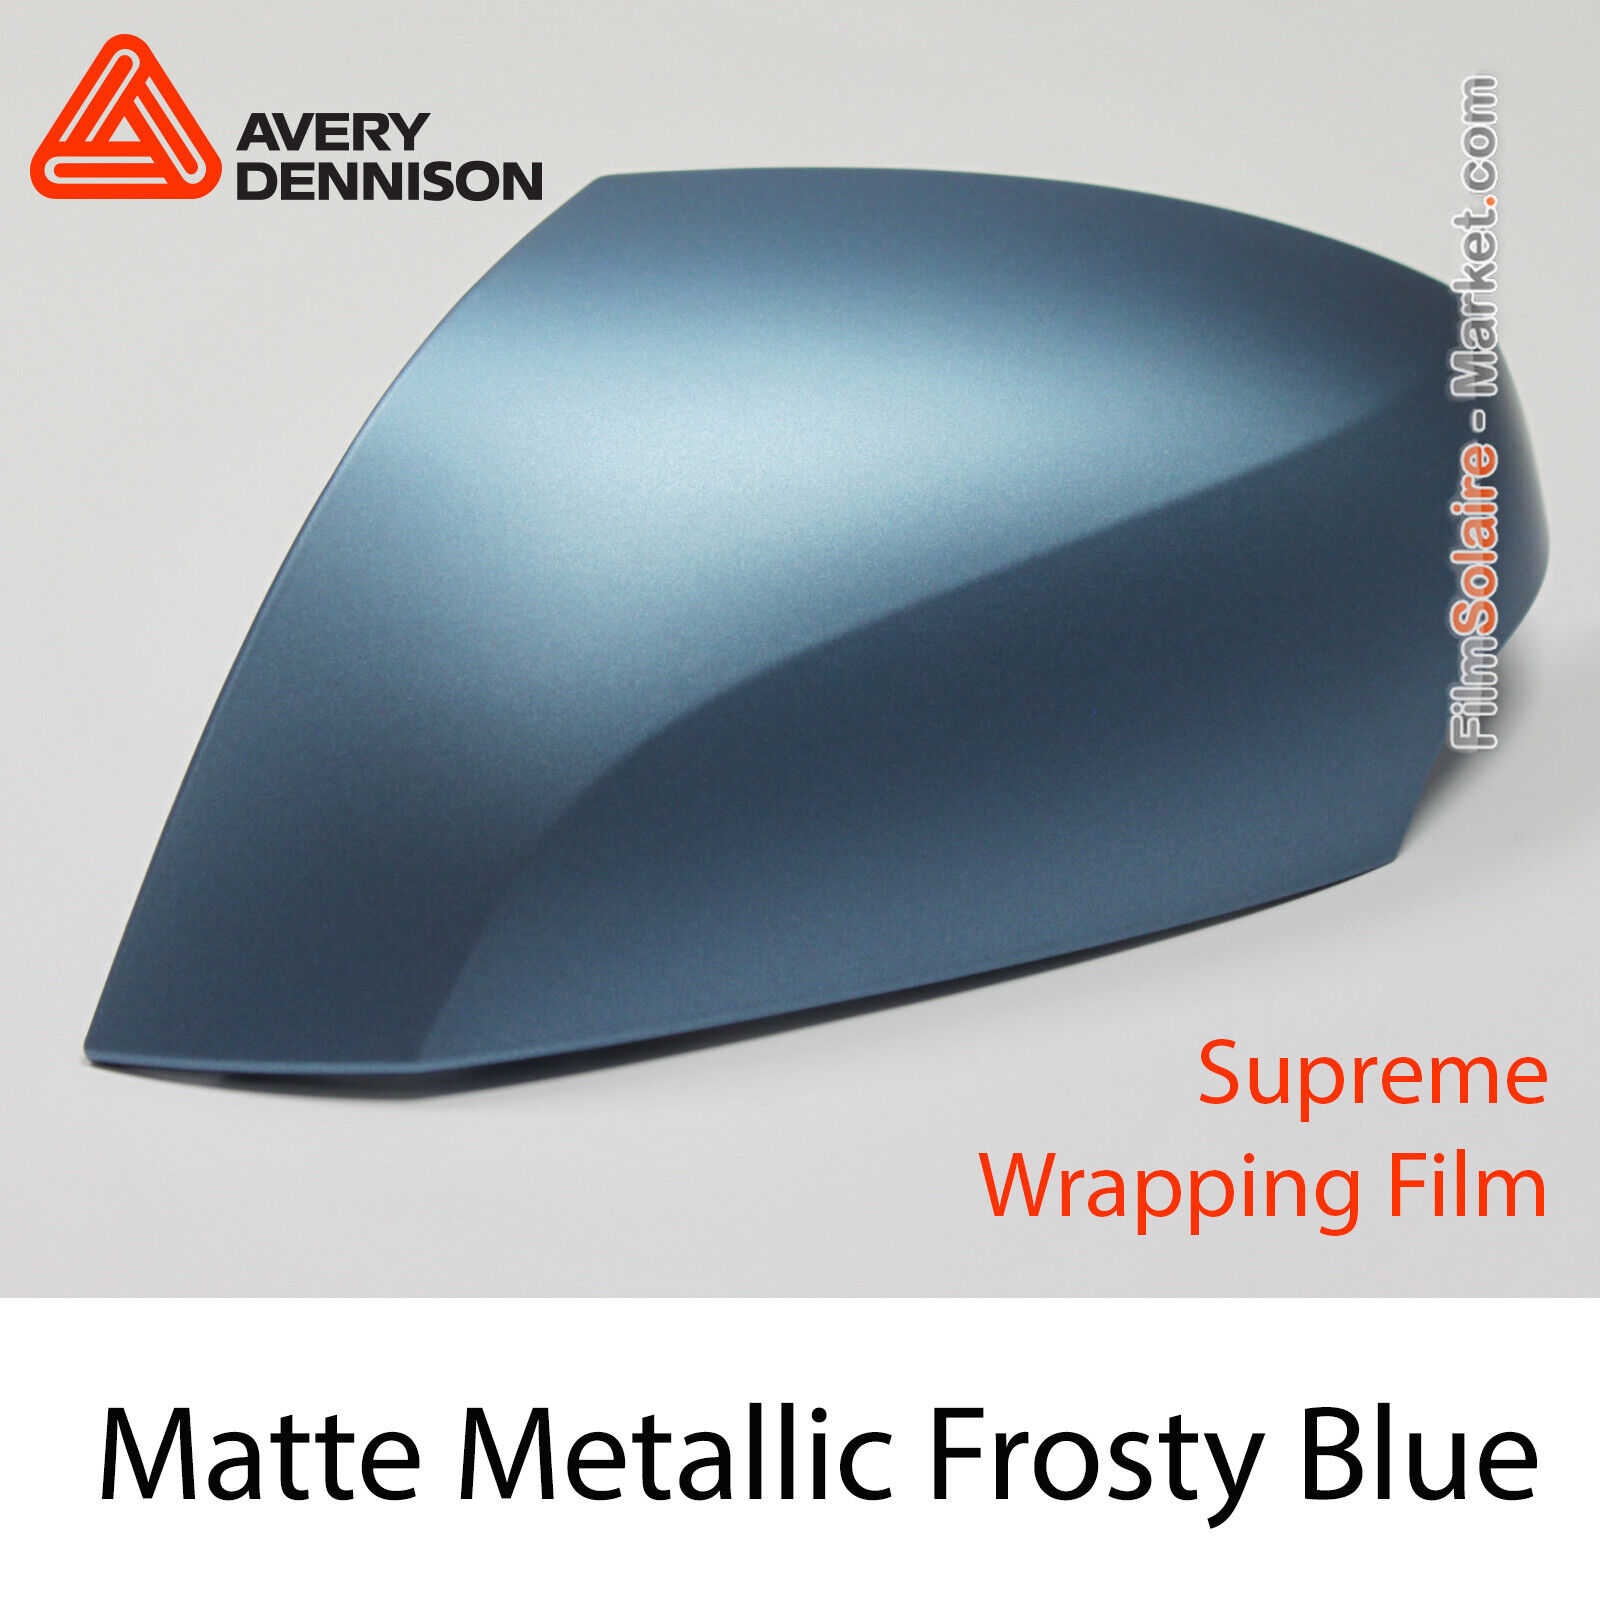 Matte Metallic Frosty Blau, Avery Dennison Supreme Wrapping Film, AS9070001